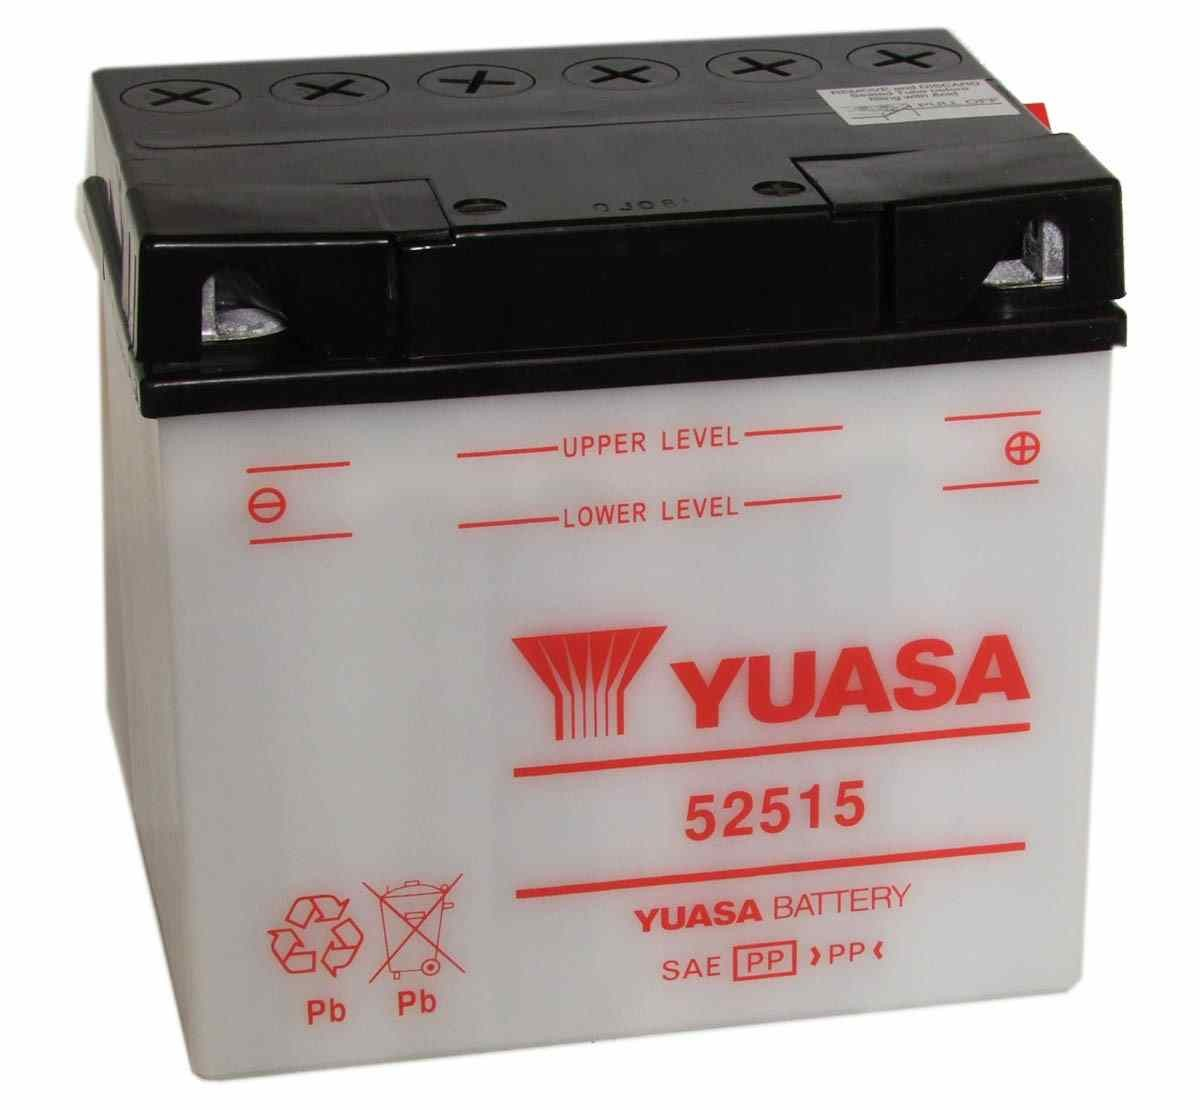 Battery for scooter or moped brand YUASA 12V 25Ah 52515de model.